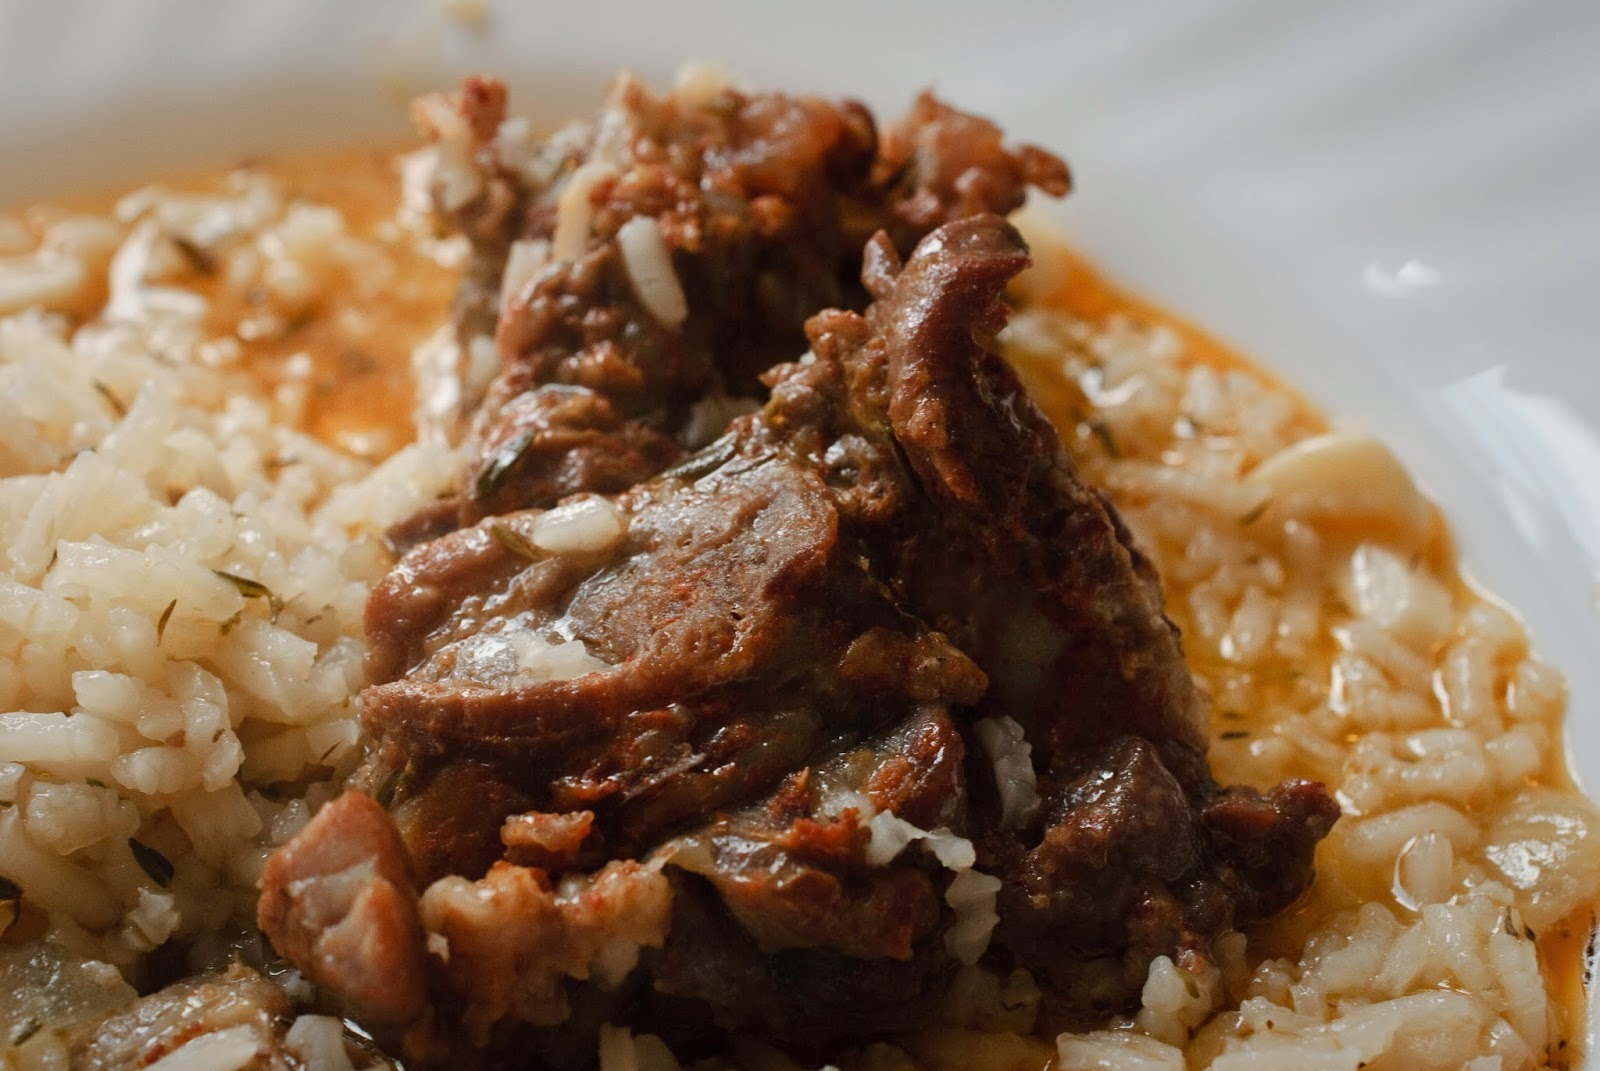 Arroz con costilla; Rice with ribs